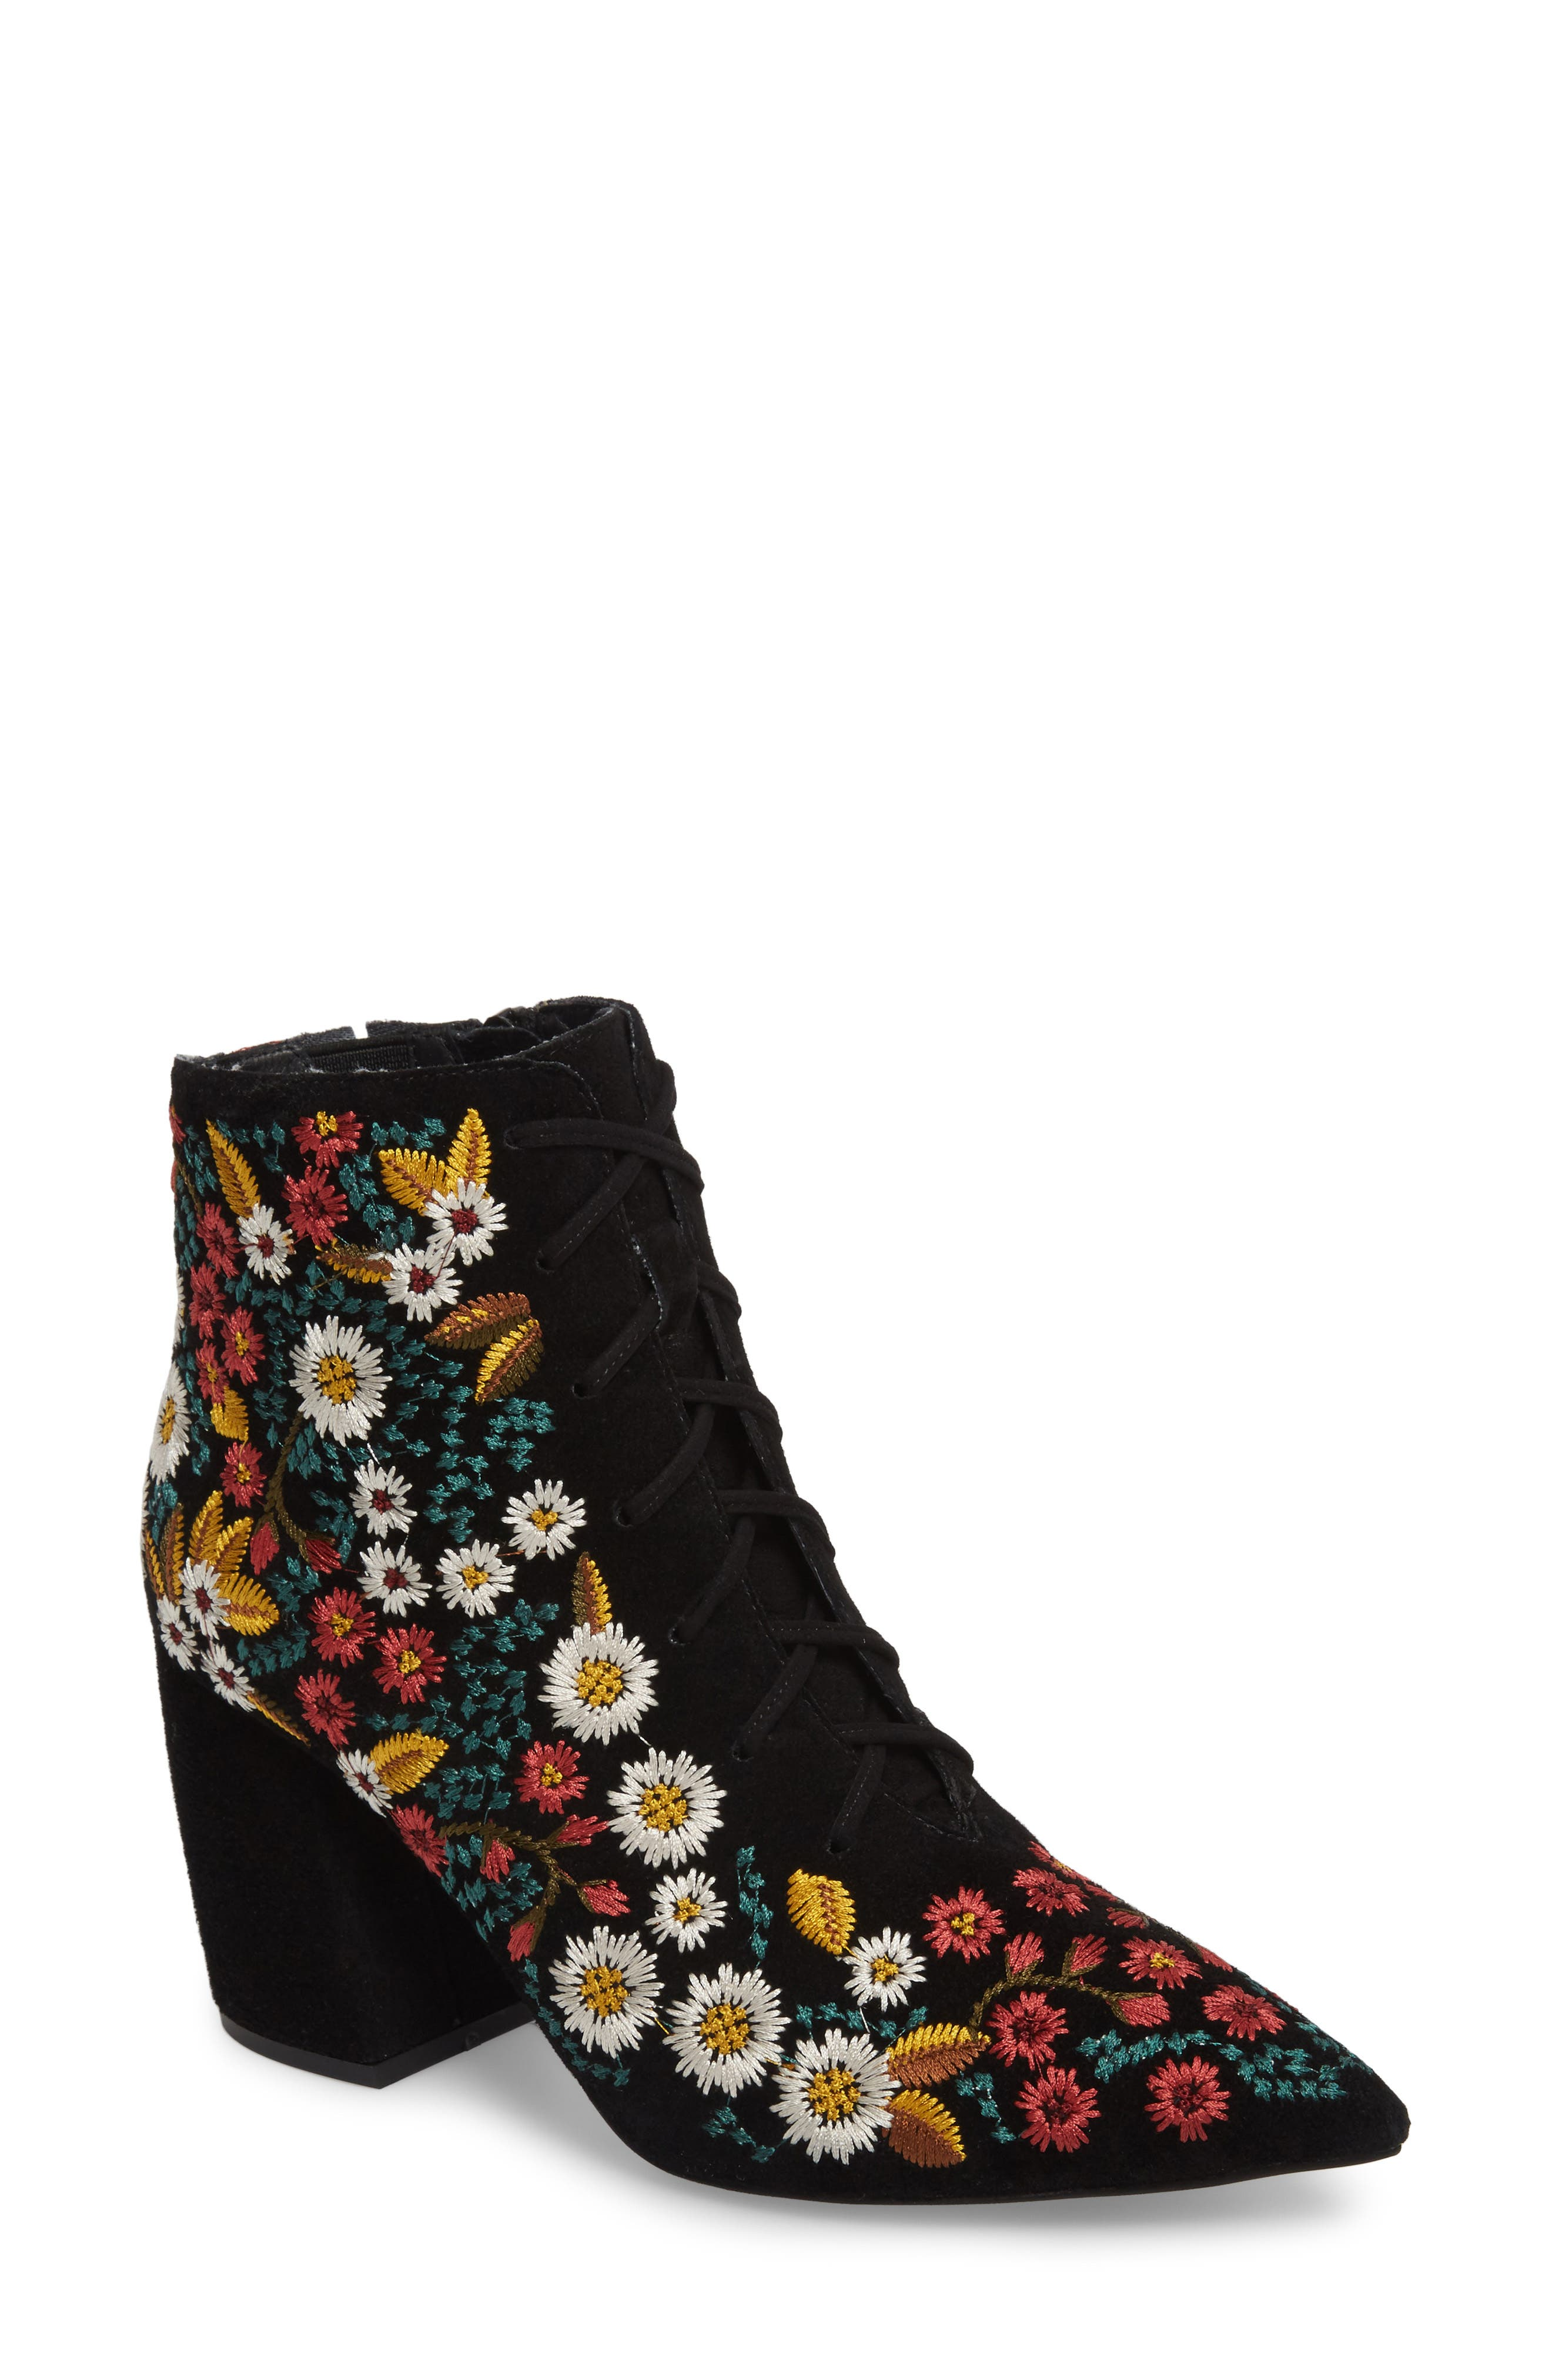 Finito Lace-Up Bootie,                         Main,                         color, 009